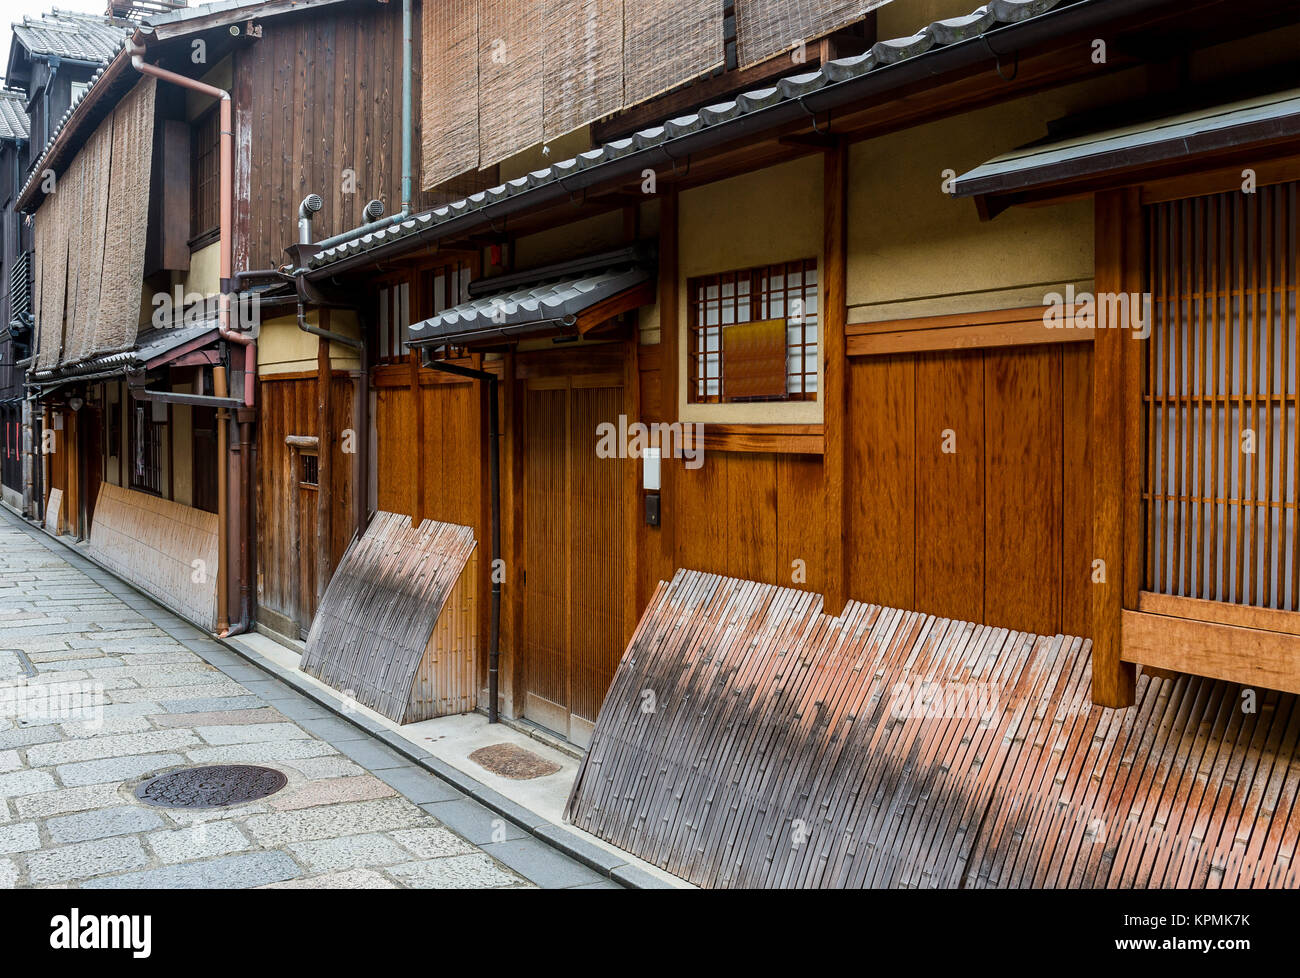 Japanese stockfotos japanese bilder seite 33 alamy for Traditionelle japanische architektur